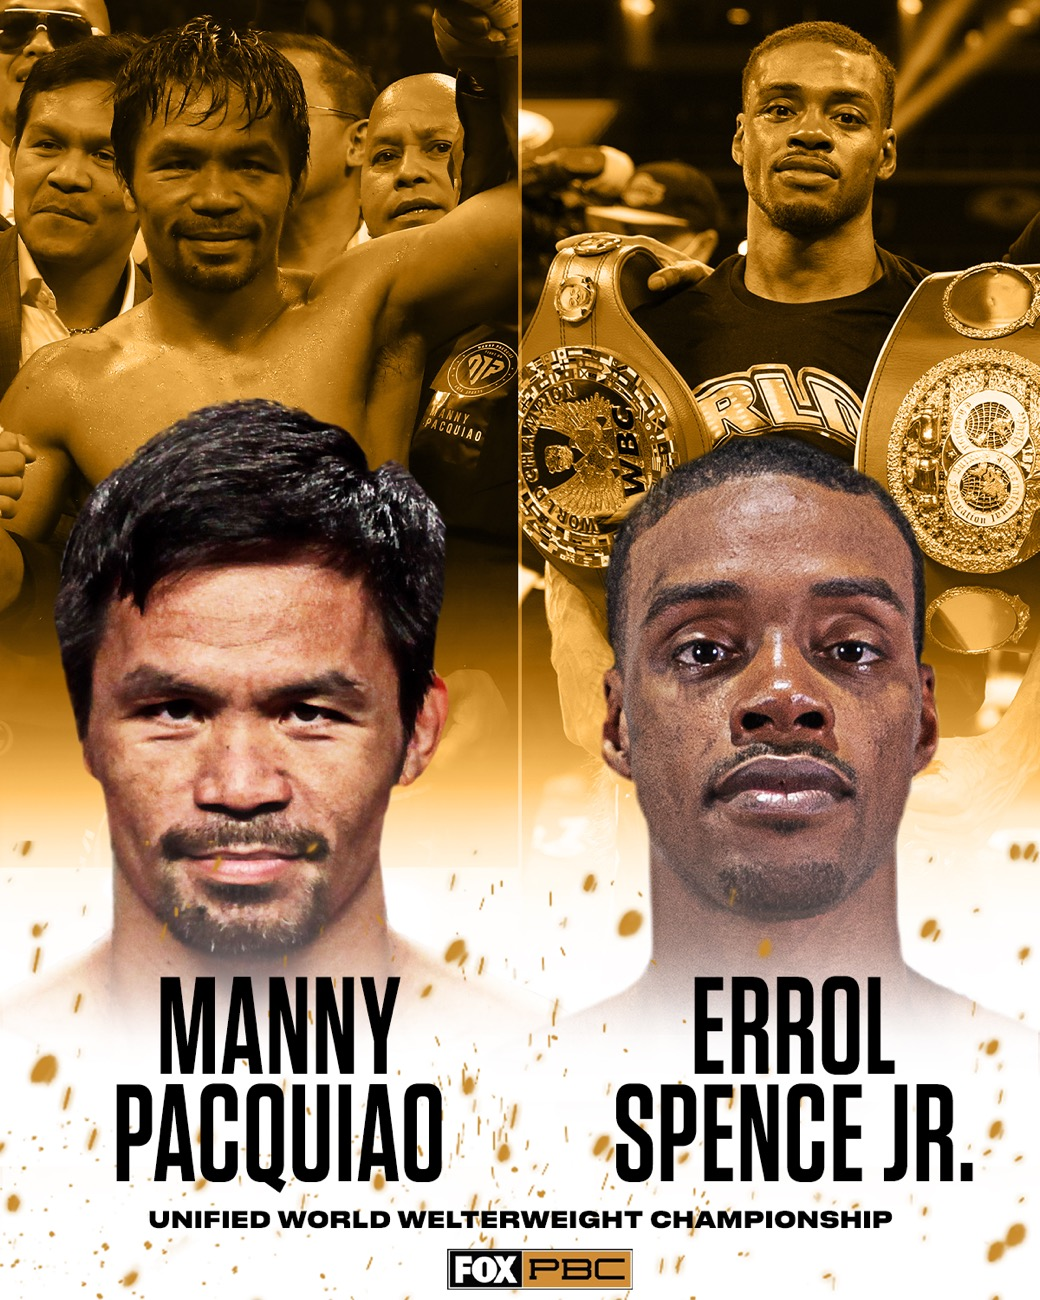 Bernard Hopkins gave a prediction for the fight between Manny Pacquiao and Errol Spence